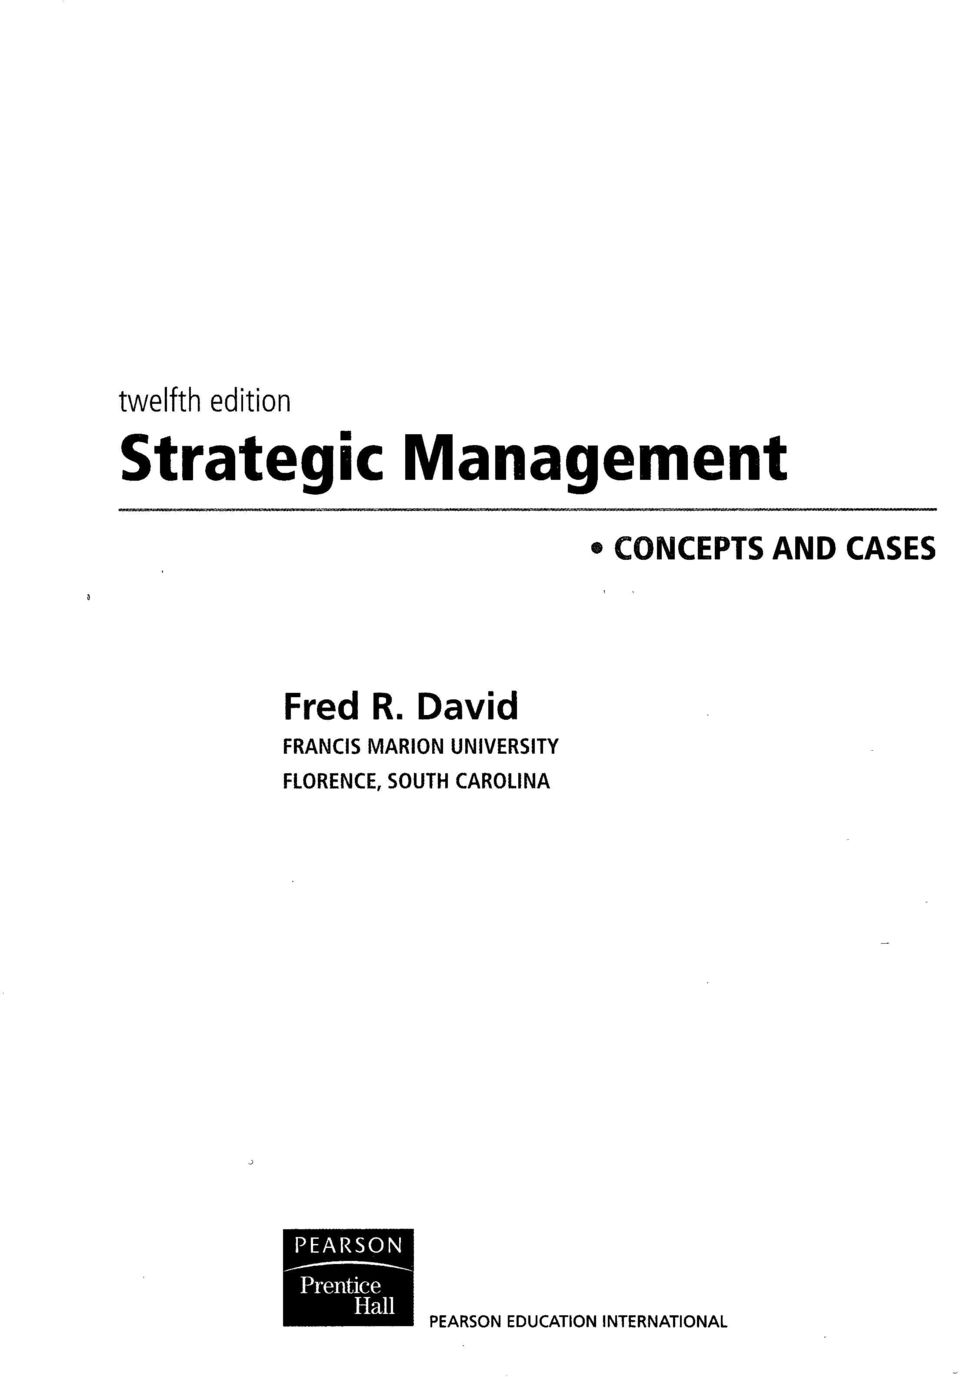 Fred R. David. twelfth edition Strategic Management